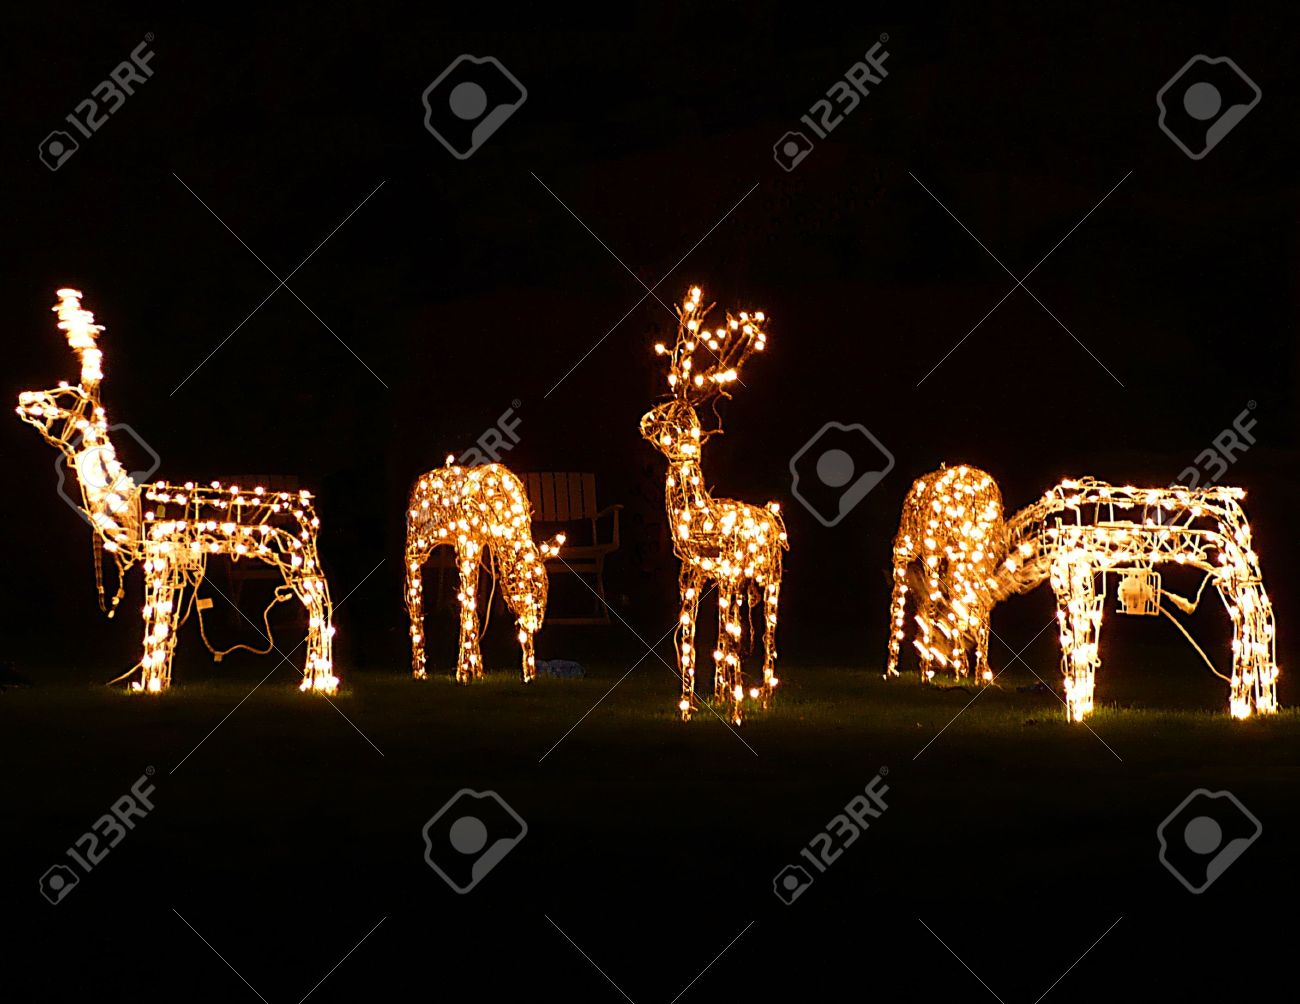 Christmas Outdoor Decorations, Lit Reindeer Grazing, South West England  Stock Photo   4068336